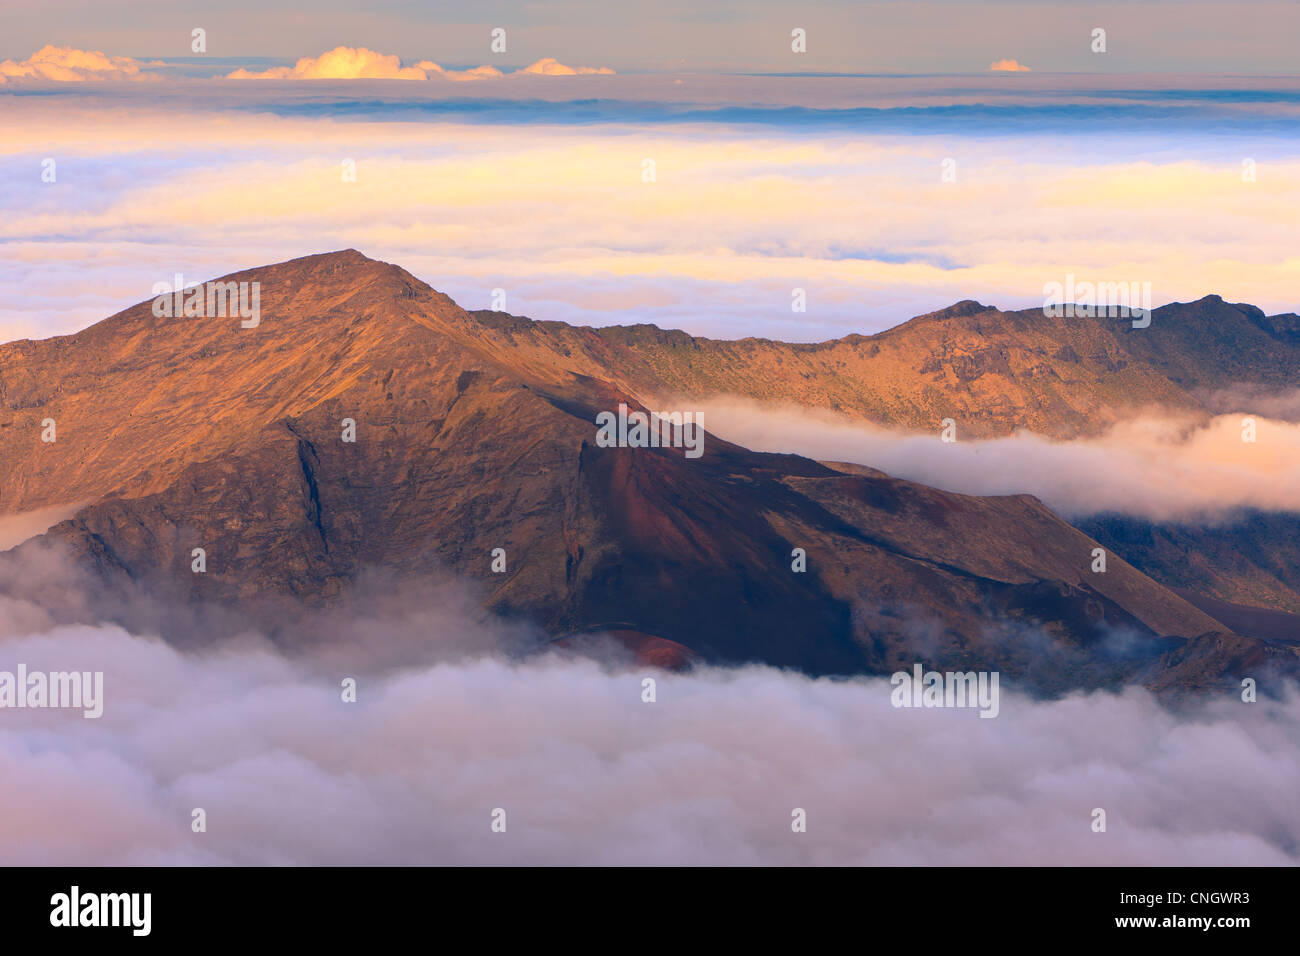 Sunset above the clouds over 3000 meters at the Haleakala Volcano, Maui, Hawaii - Stock Image